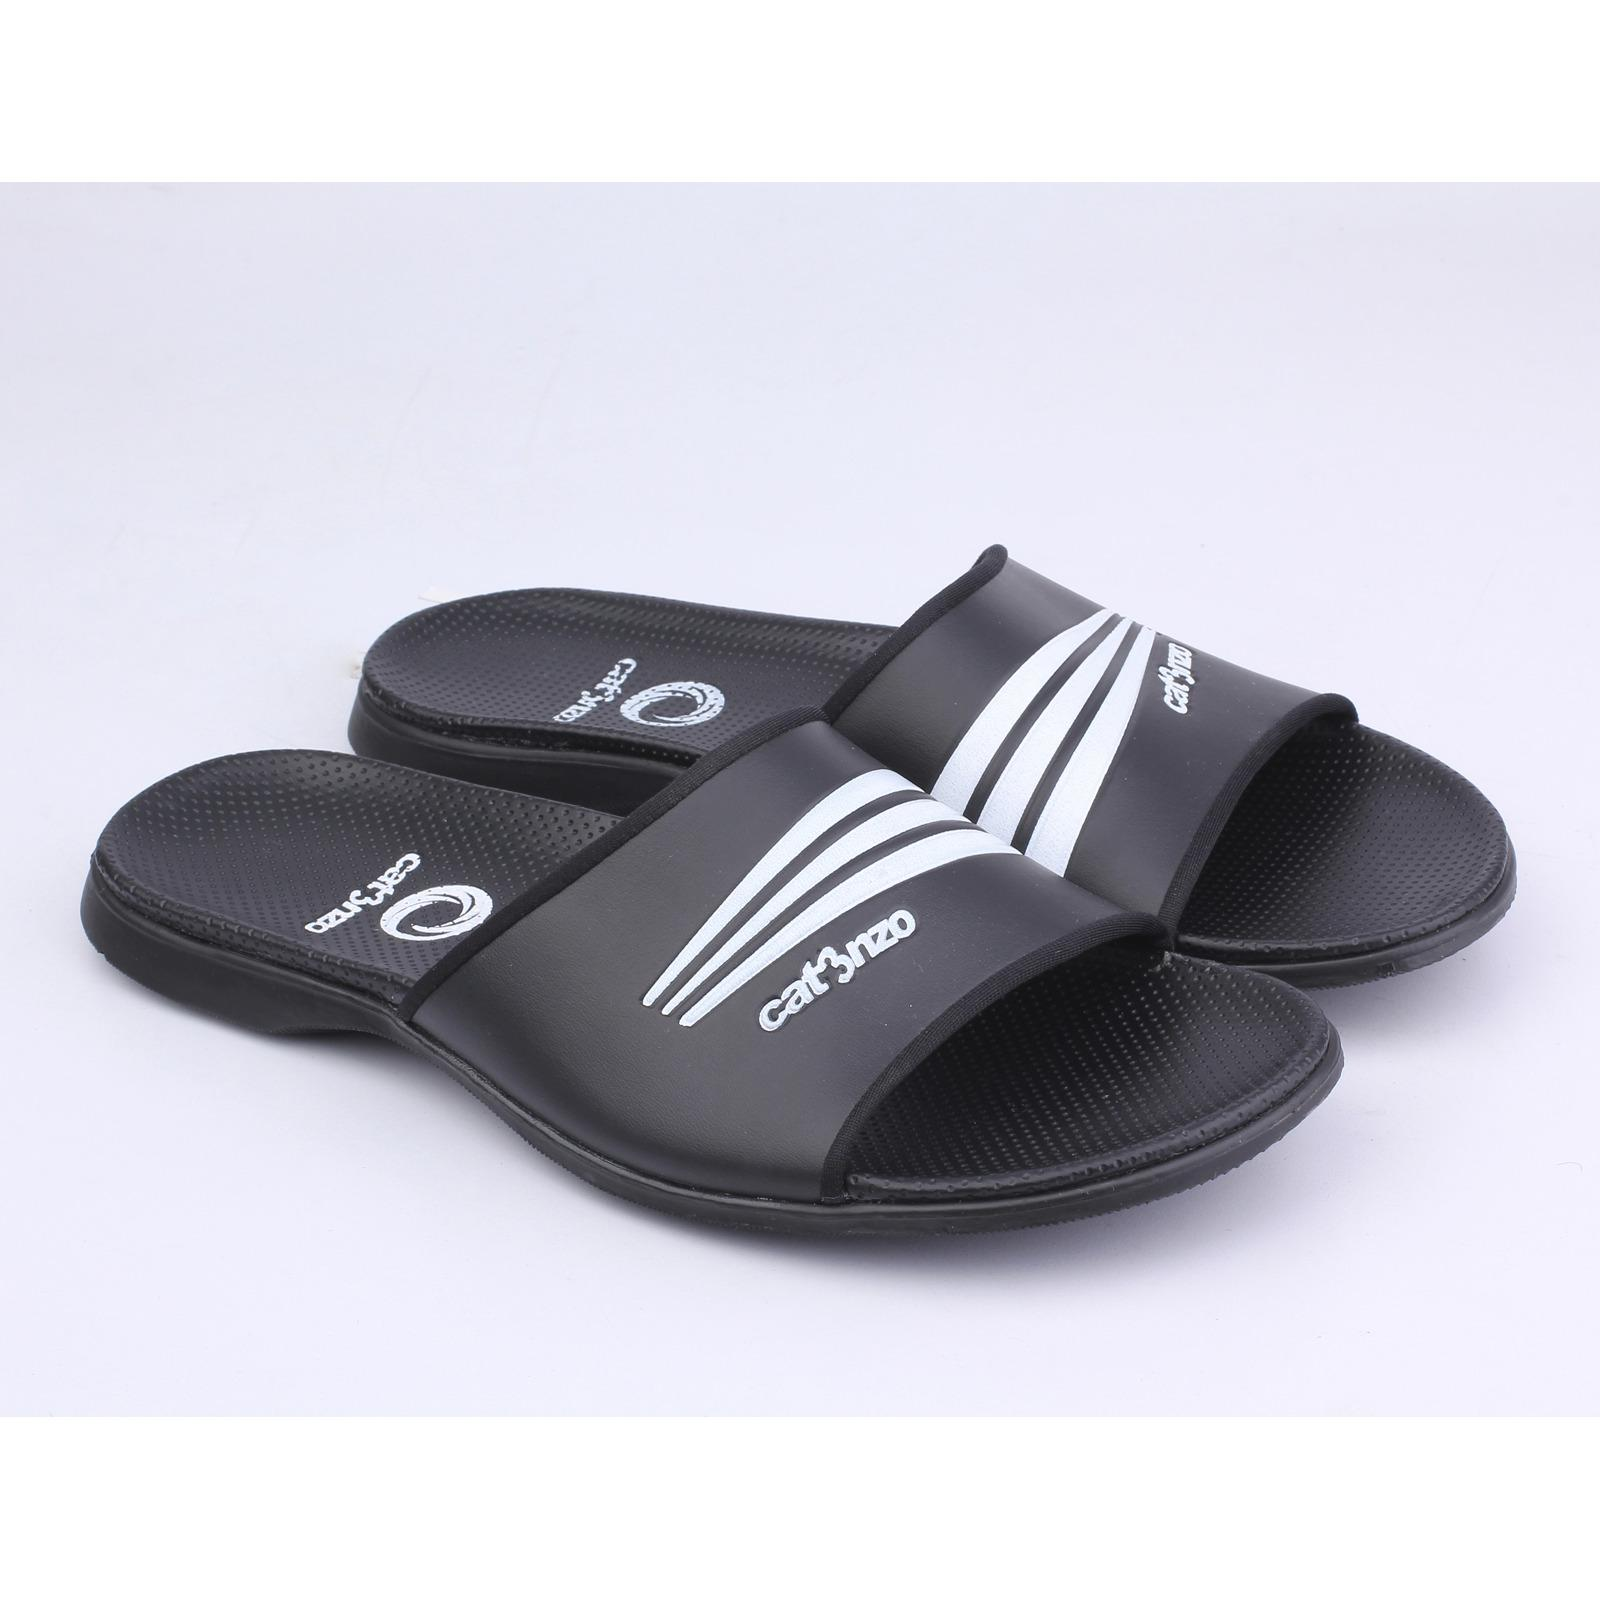 Catenzo Sport - Men Black Sandals - Sandal Sporty Pria - Black